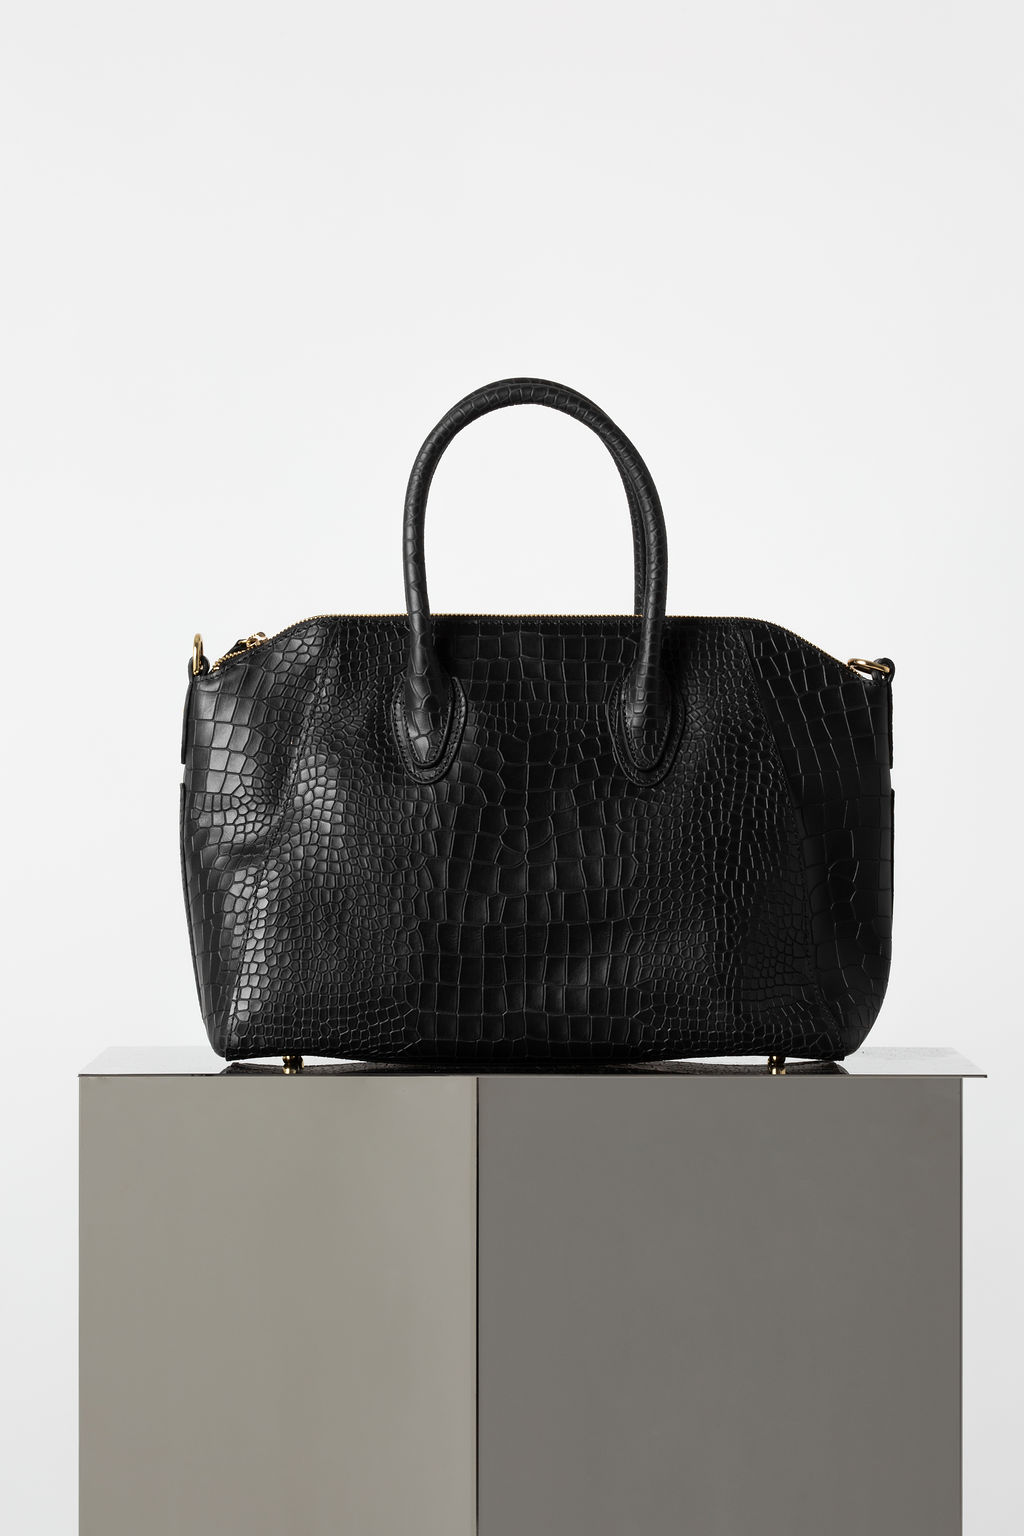 Shaz Tote In Black Embossed Croc Leather